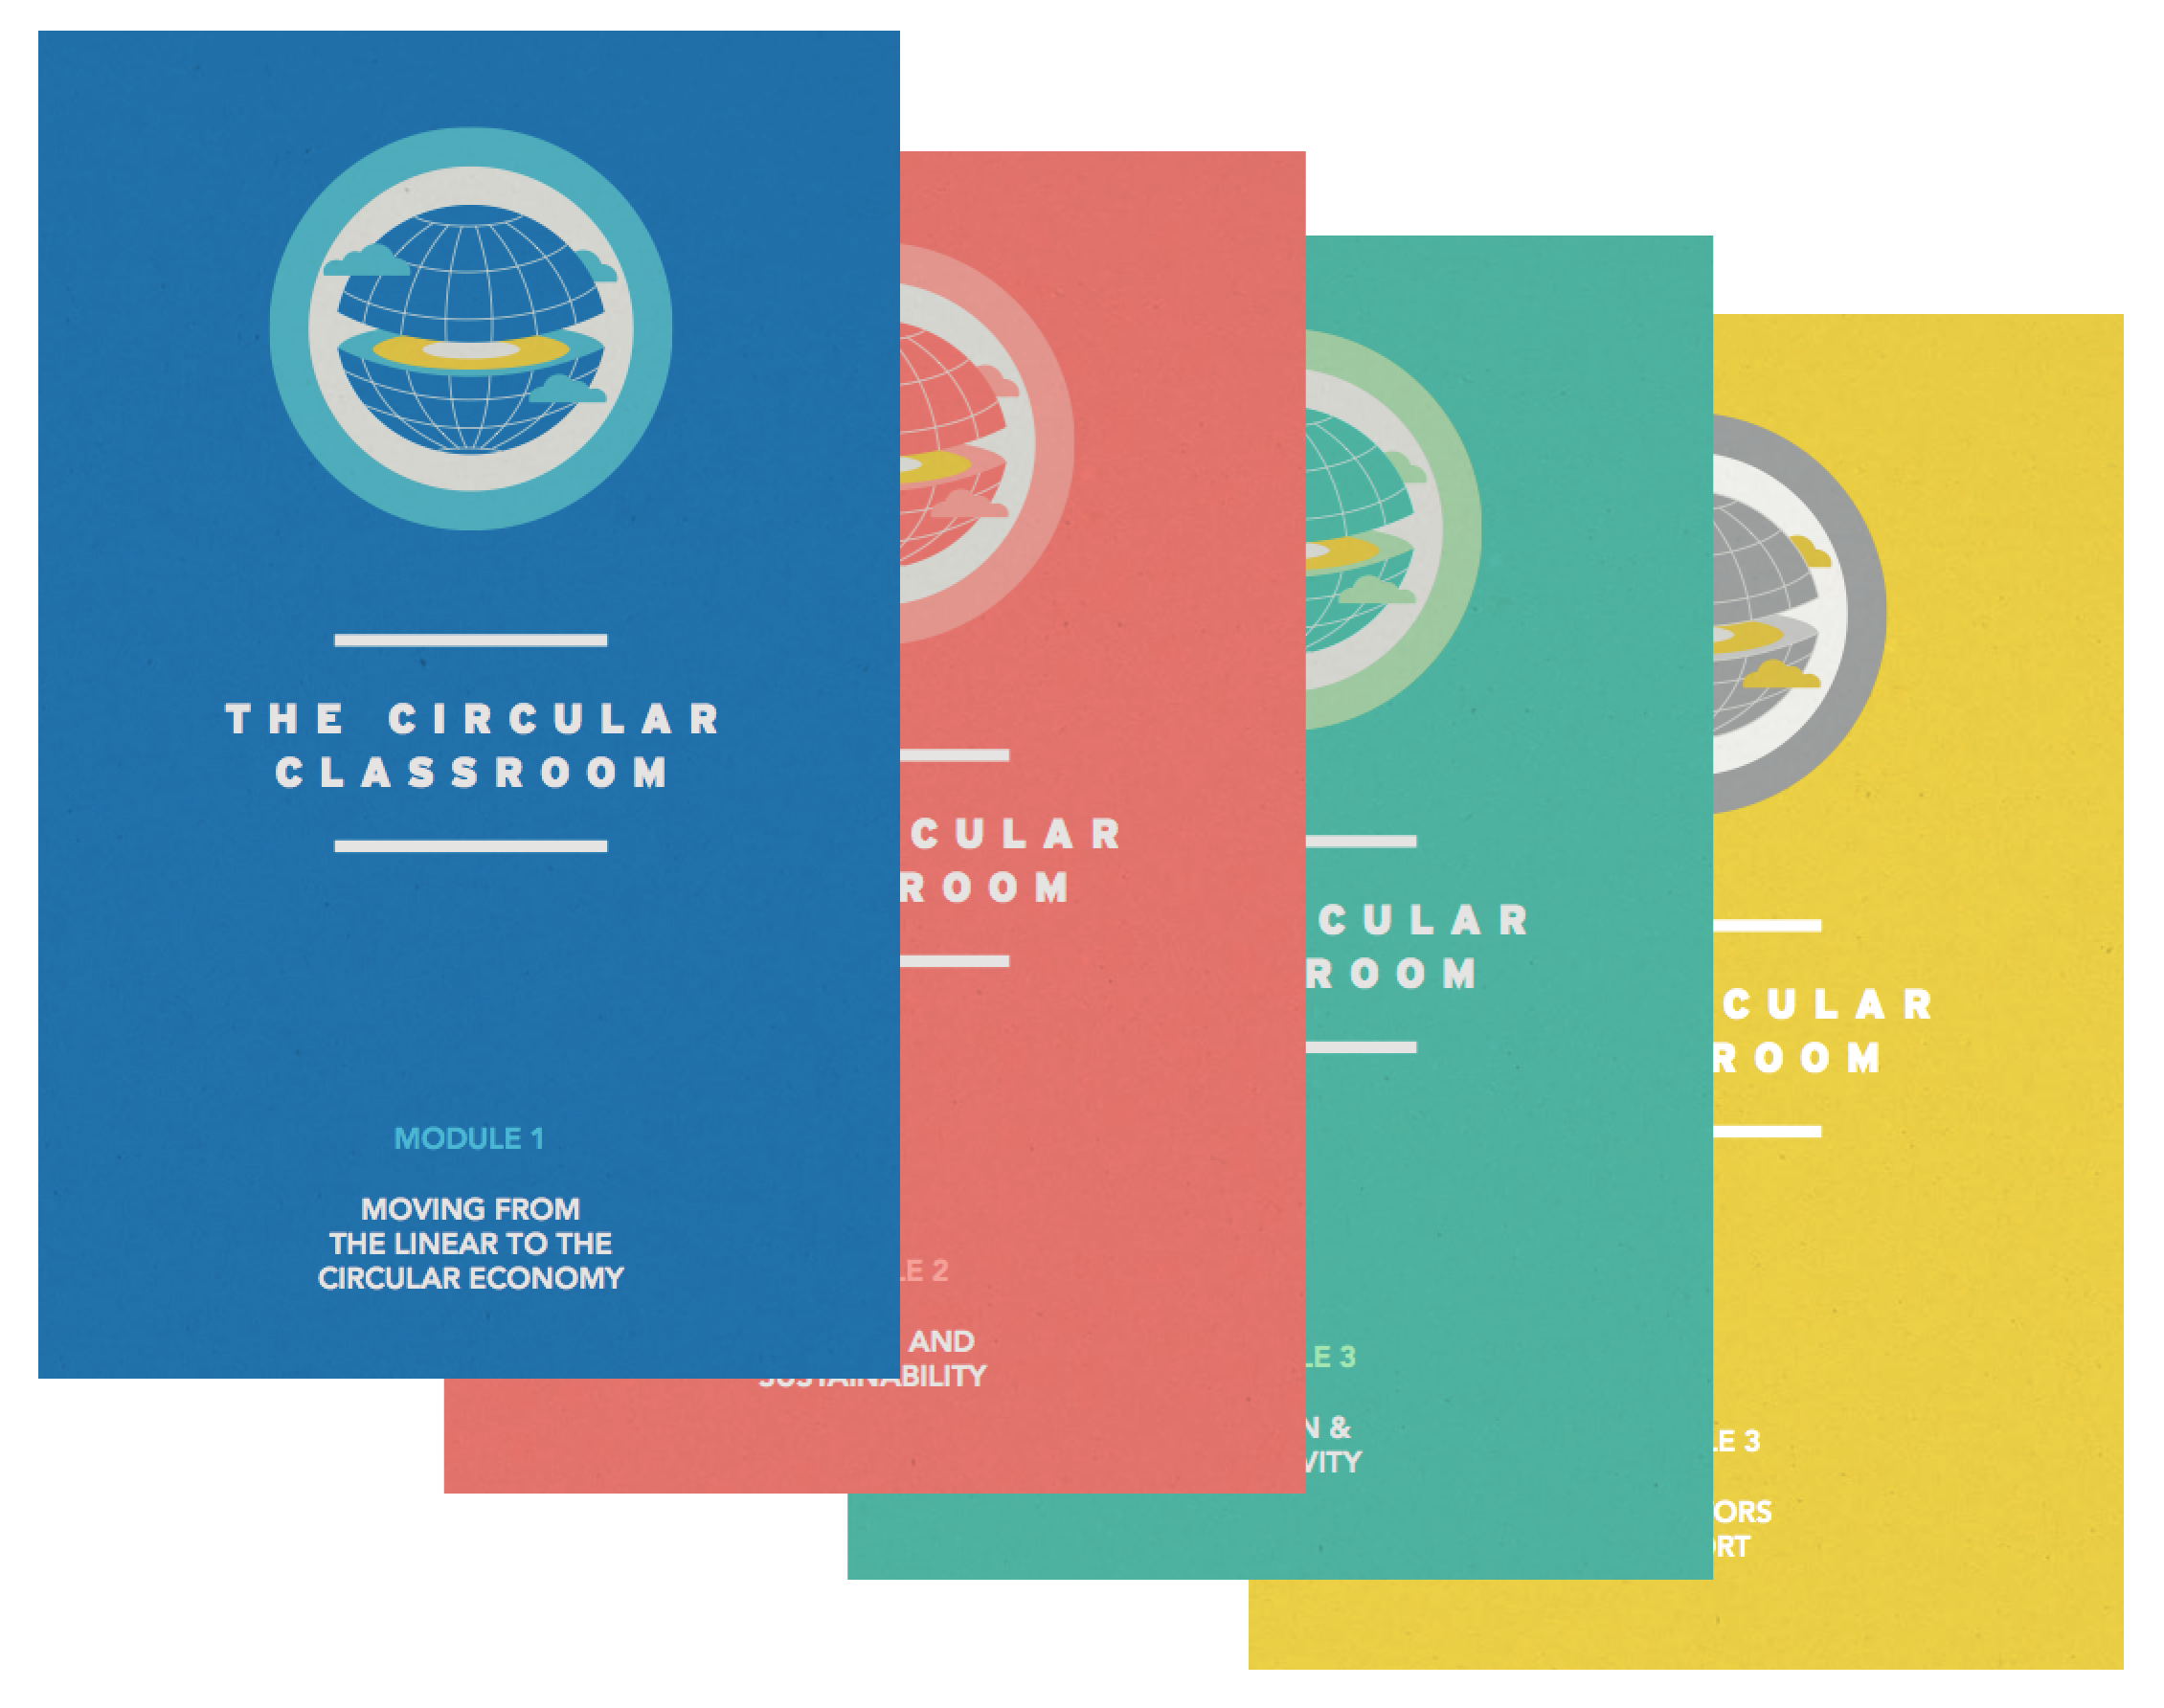 The Circular Classroom A Free Toolkit For Activating The Circular Economy Through Experiential Learning By Leyla Acaroglu Disruptive Design Medium